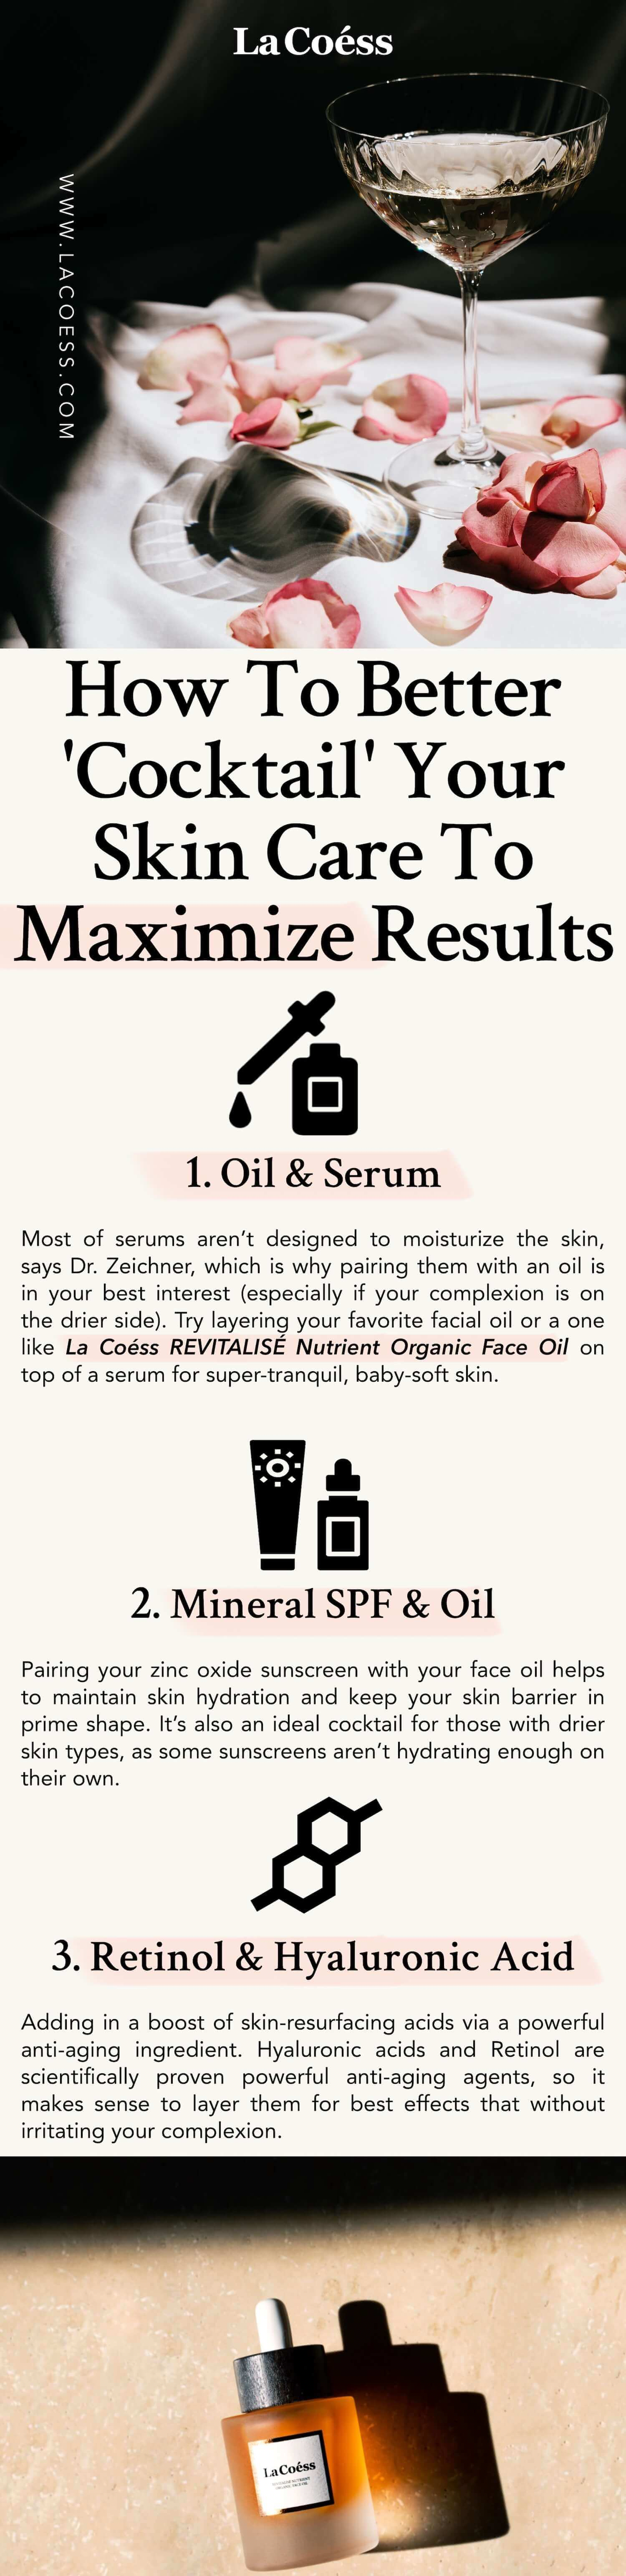 How To Better Cocktail Your Skin Care To Maximize Results